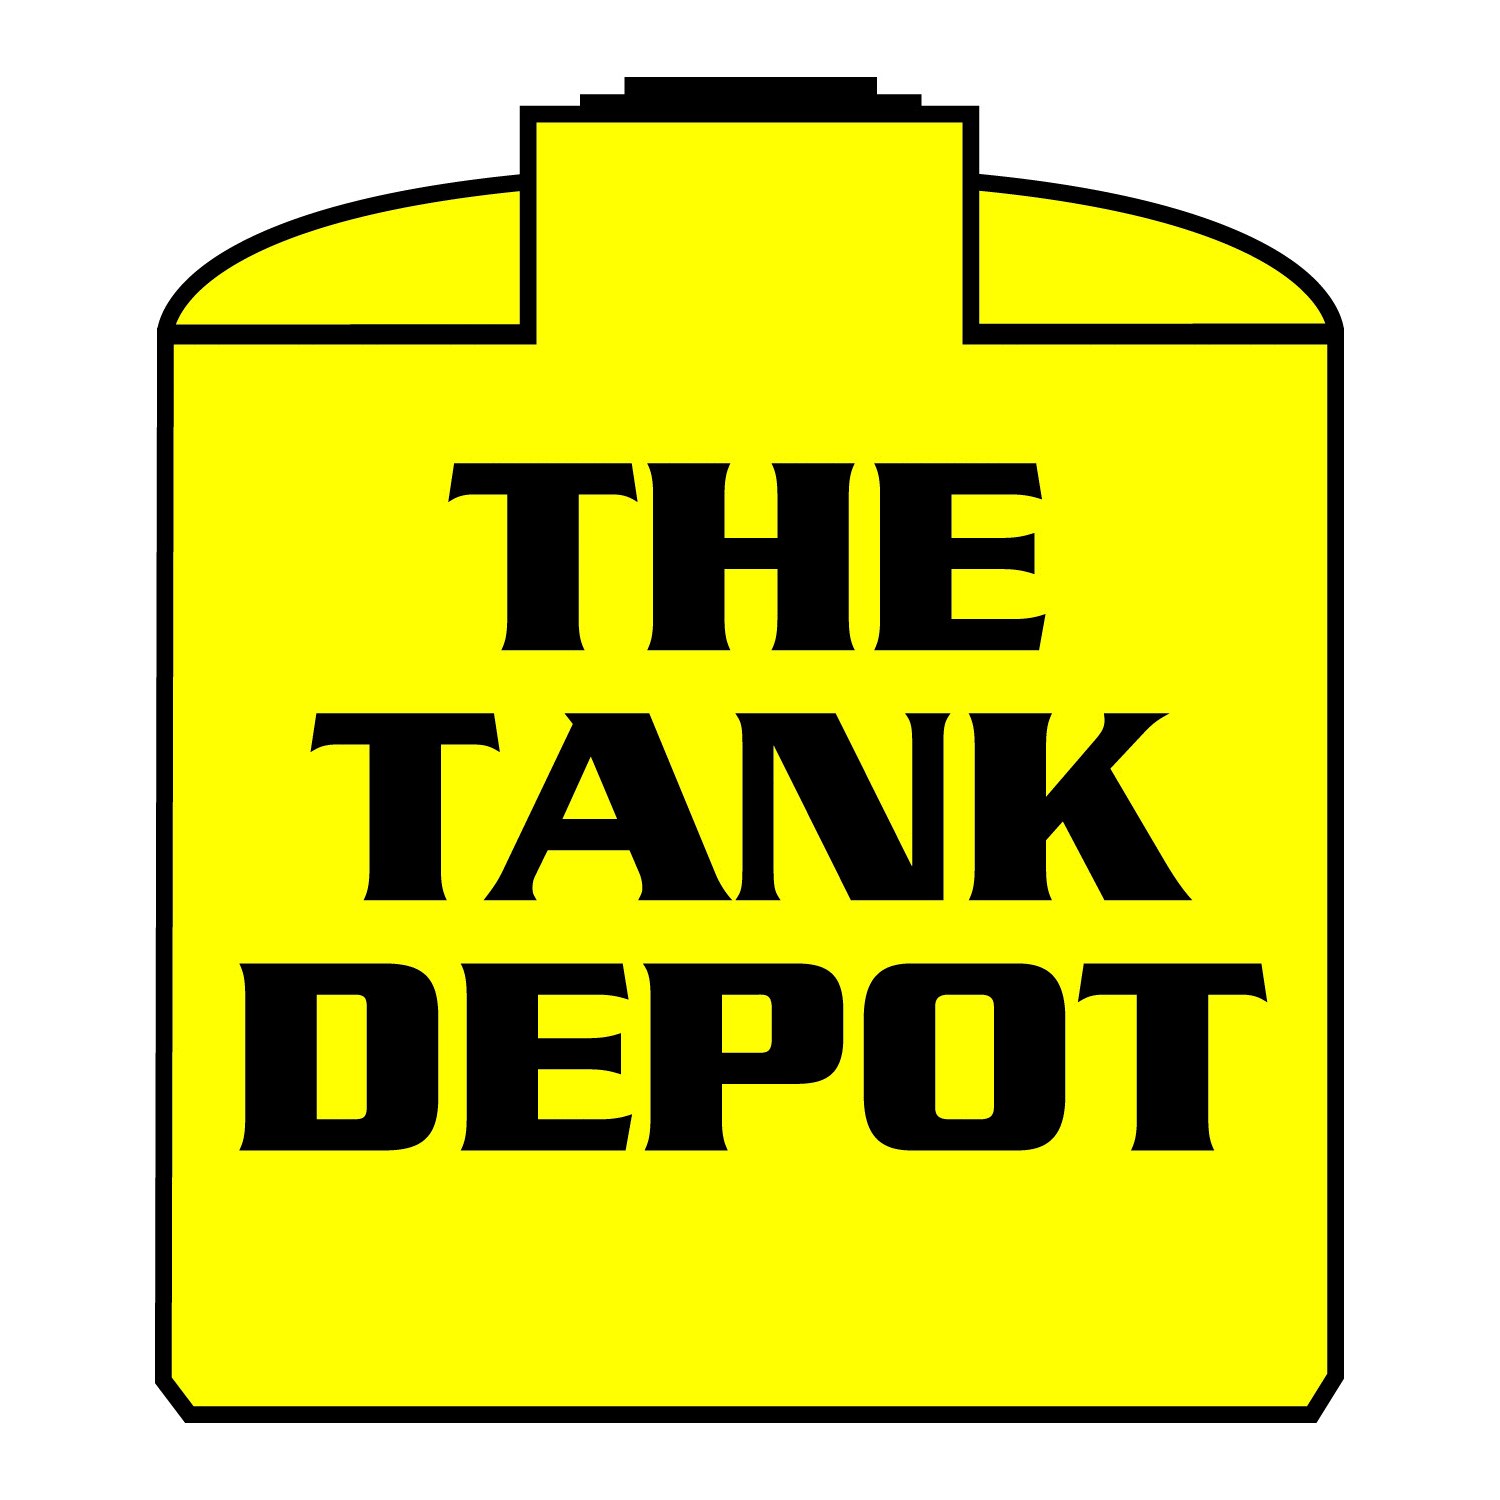 Tank Depot of Fairfield Texas image 5